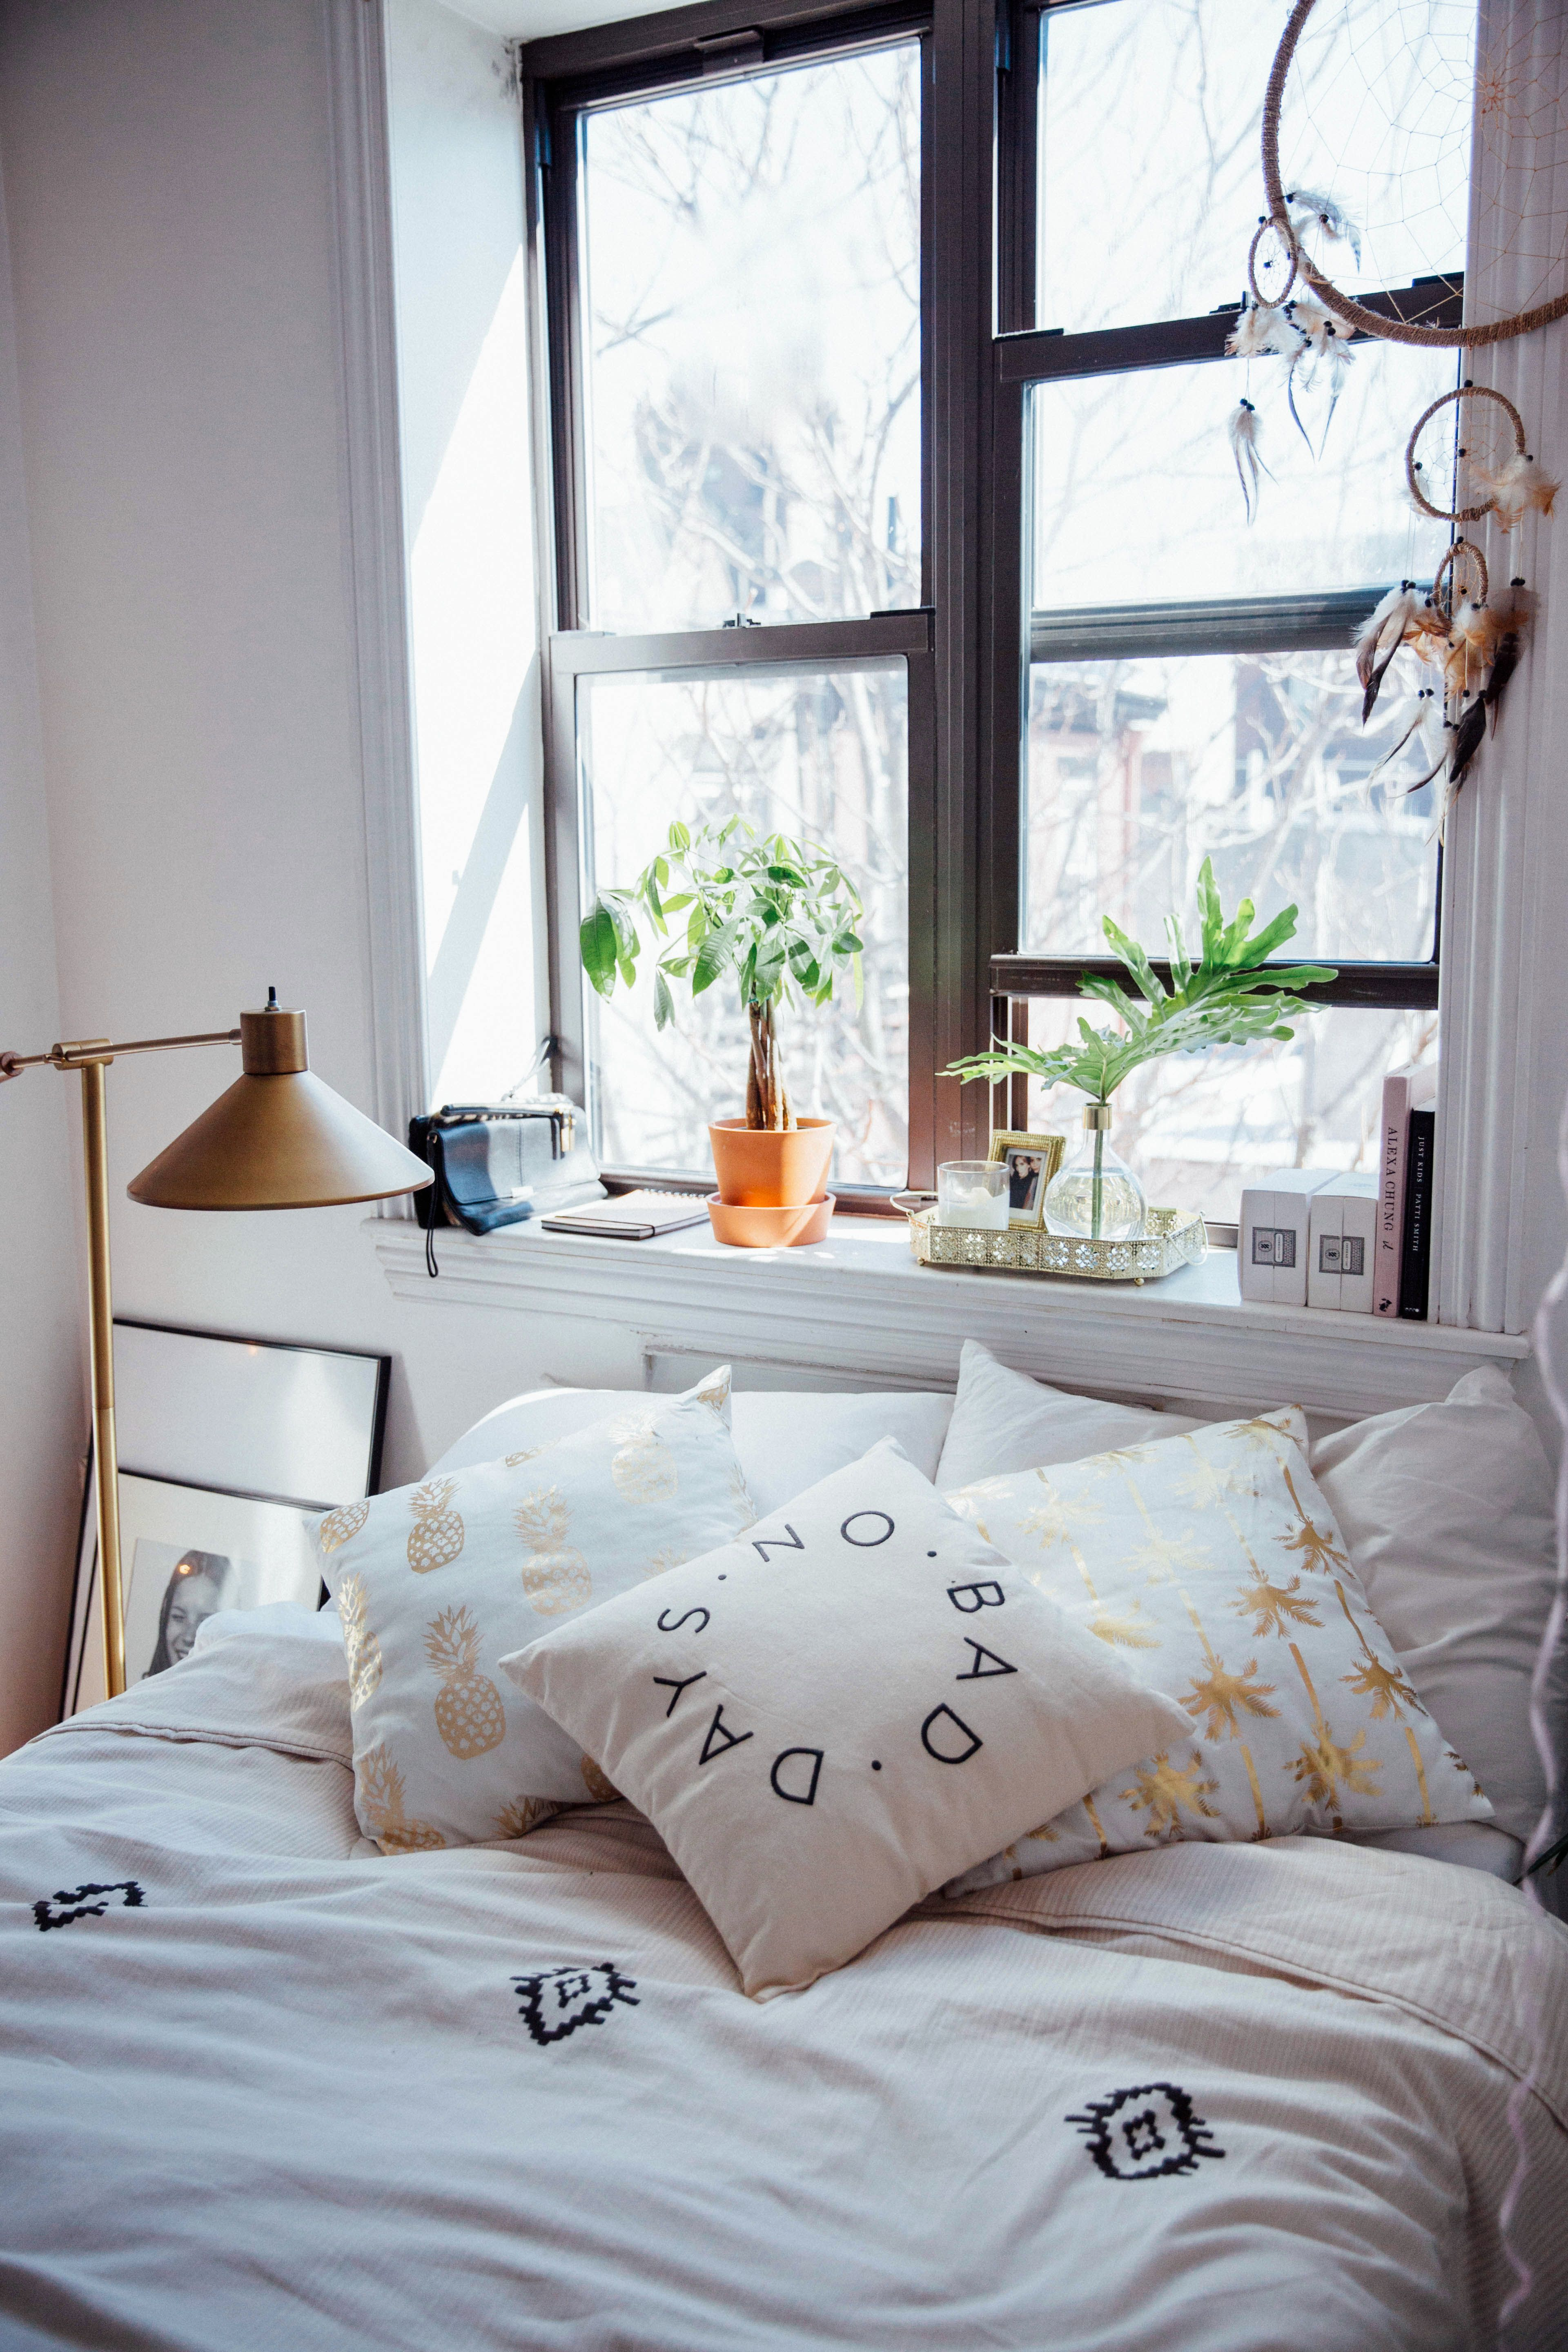 Bedroom Ideas Urban Outfitters Urban Outfitters Blog About A Space Viktoria Dahlberg